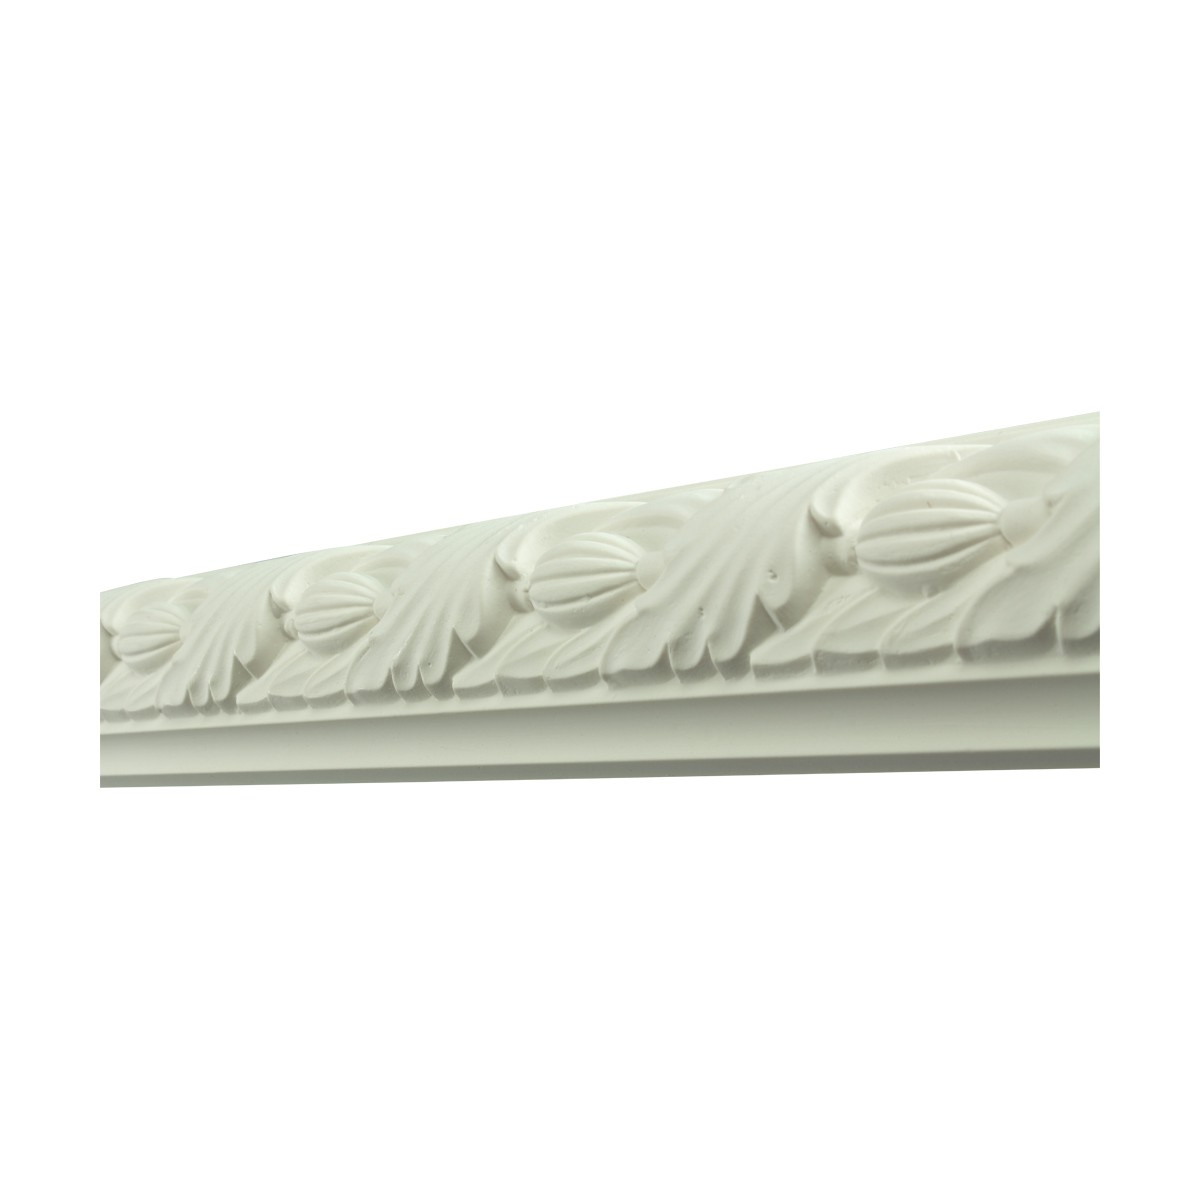 Renovators Supply Crown Molding White Urethane Tennyson Ornate Design 6 Pieces Totaling 564 Length White PrePrimed Urethane Crown Cornice Molding Cornice Crown Home Depot Ekena Millwork Molding Wall Ceiling Corner Cornice Crown Cove Molding